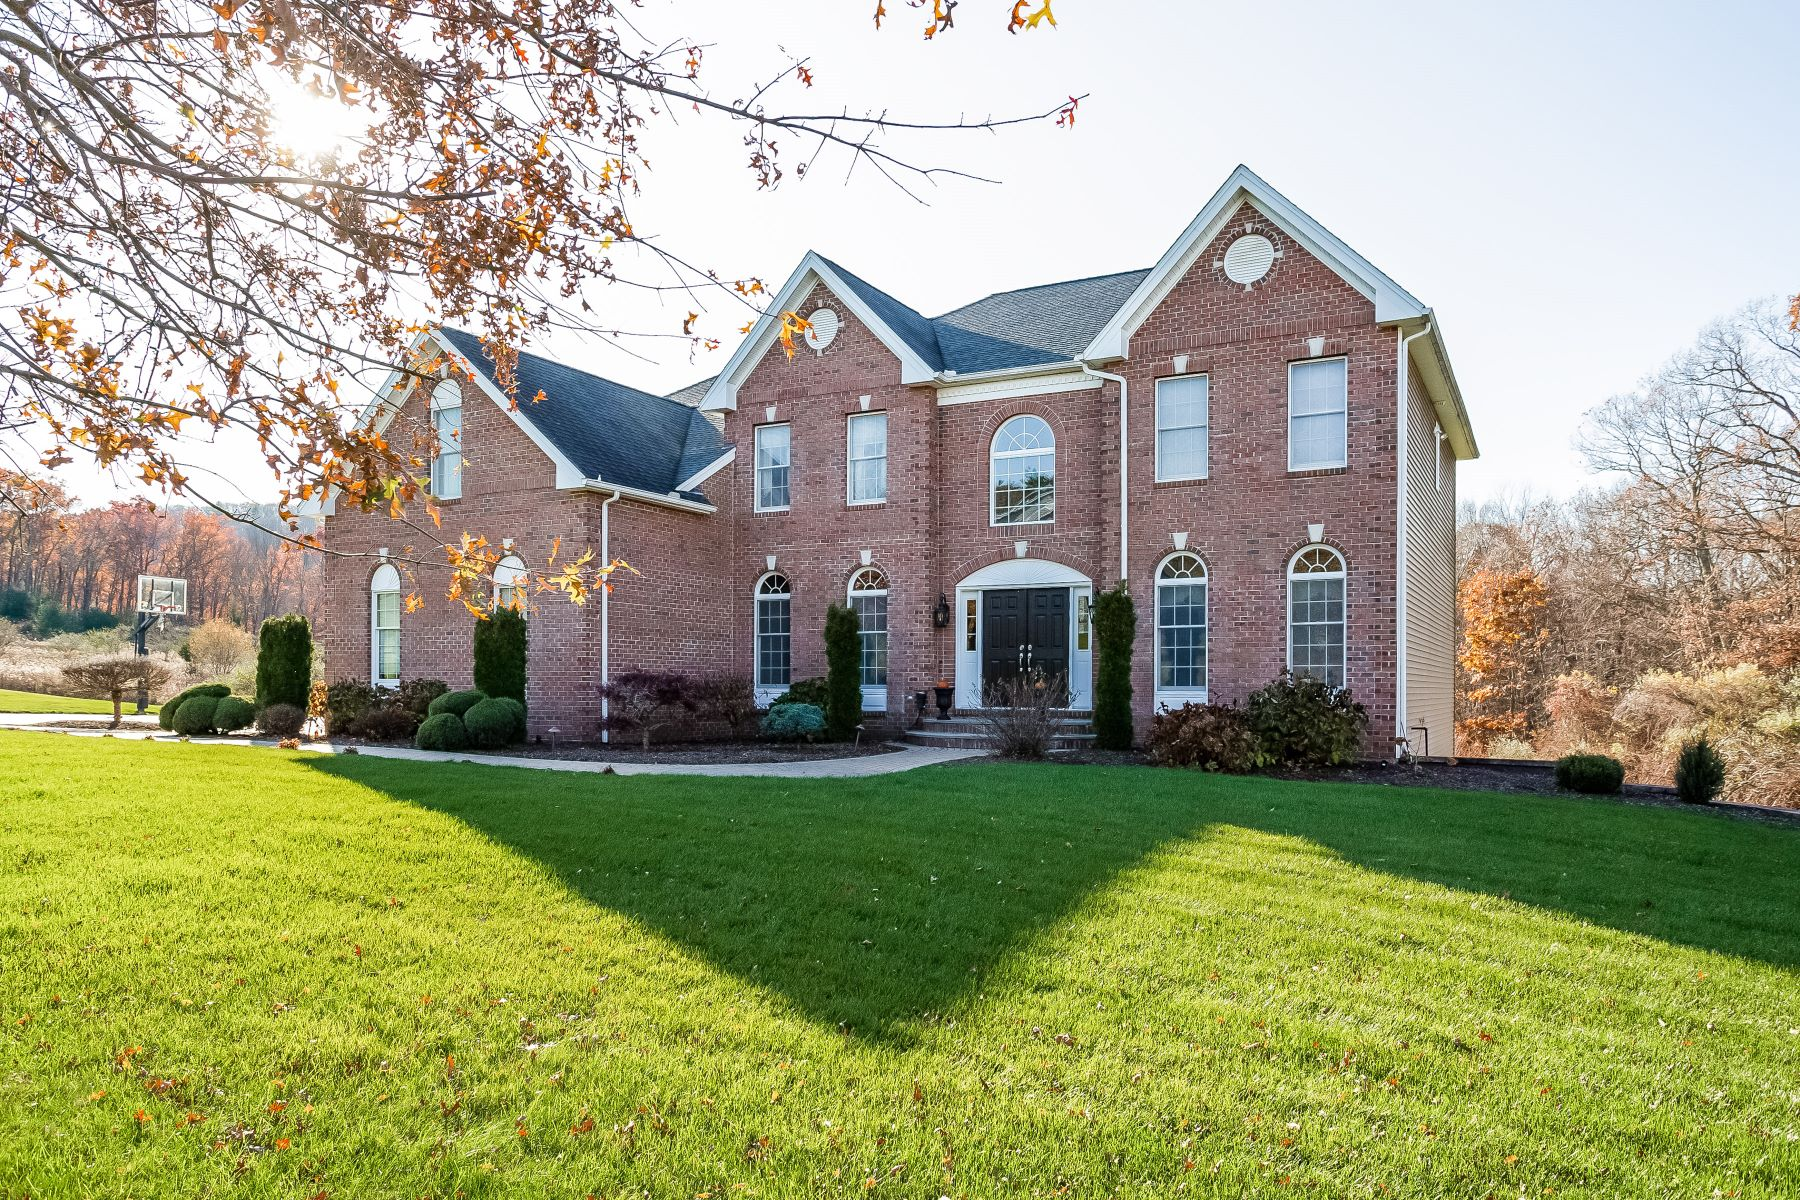 Single Family Homes for Active at Custom Built Brick Faced Colonial 115 Penwood Crossing Glastonbury, Connecticut 06033 United States